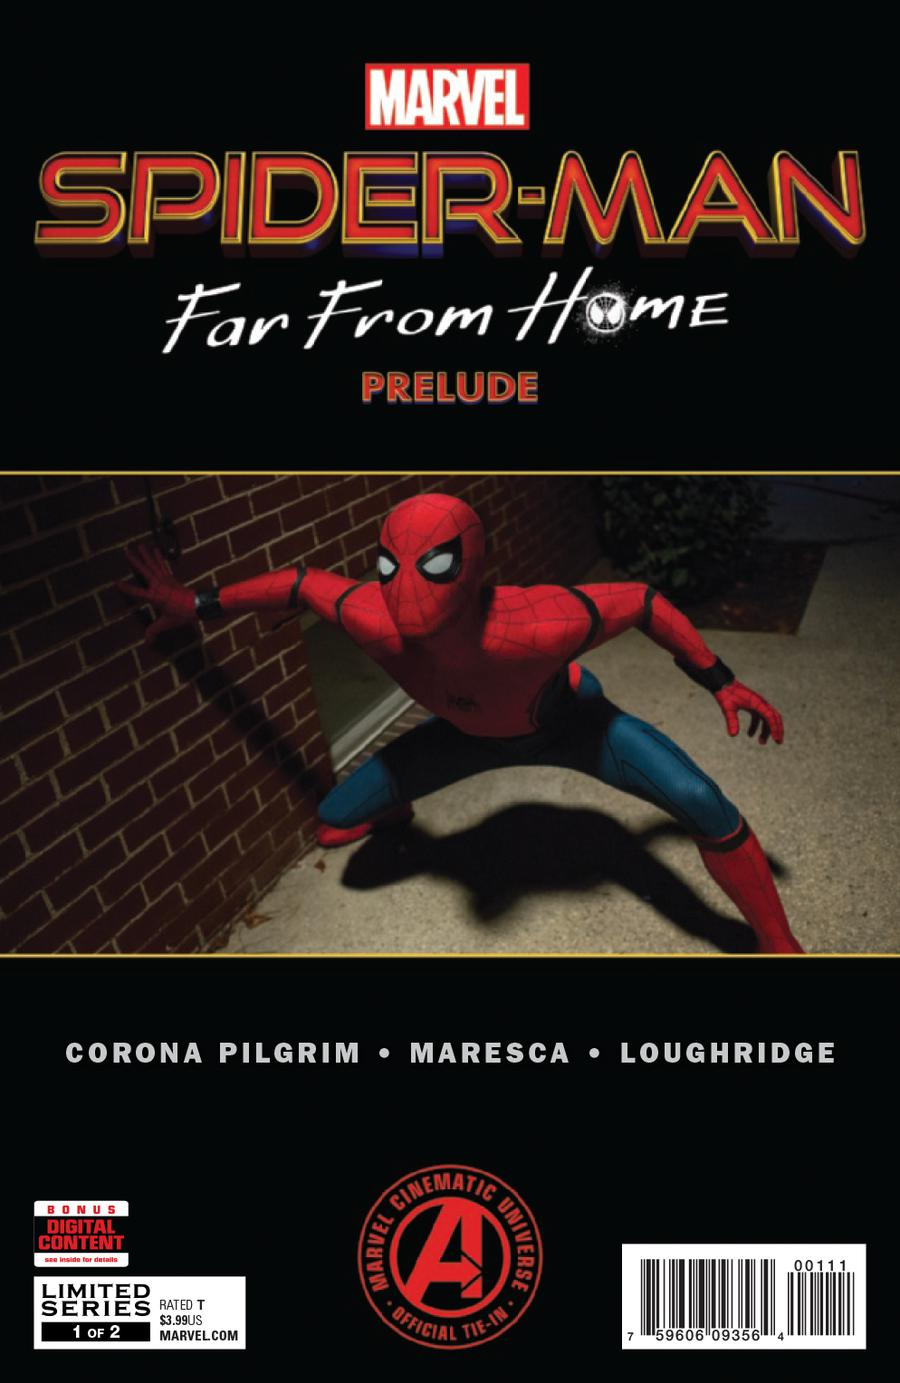 Marvels Spider-Man Far From Home Prelude #1